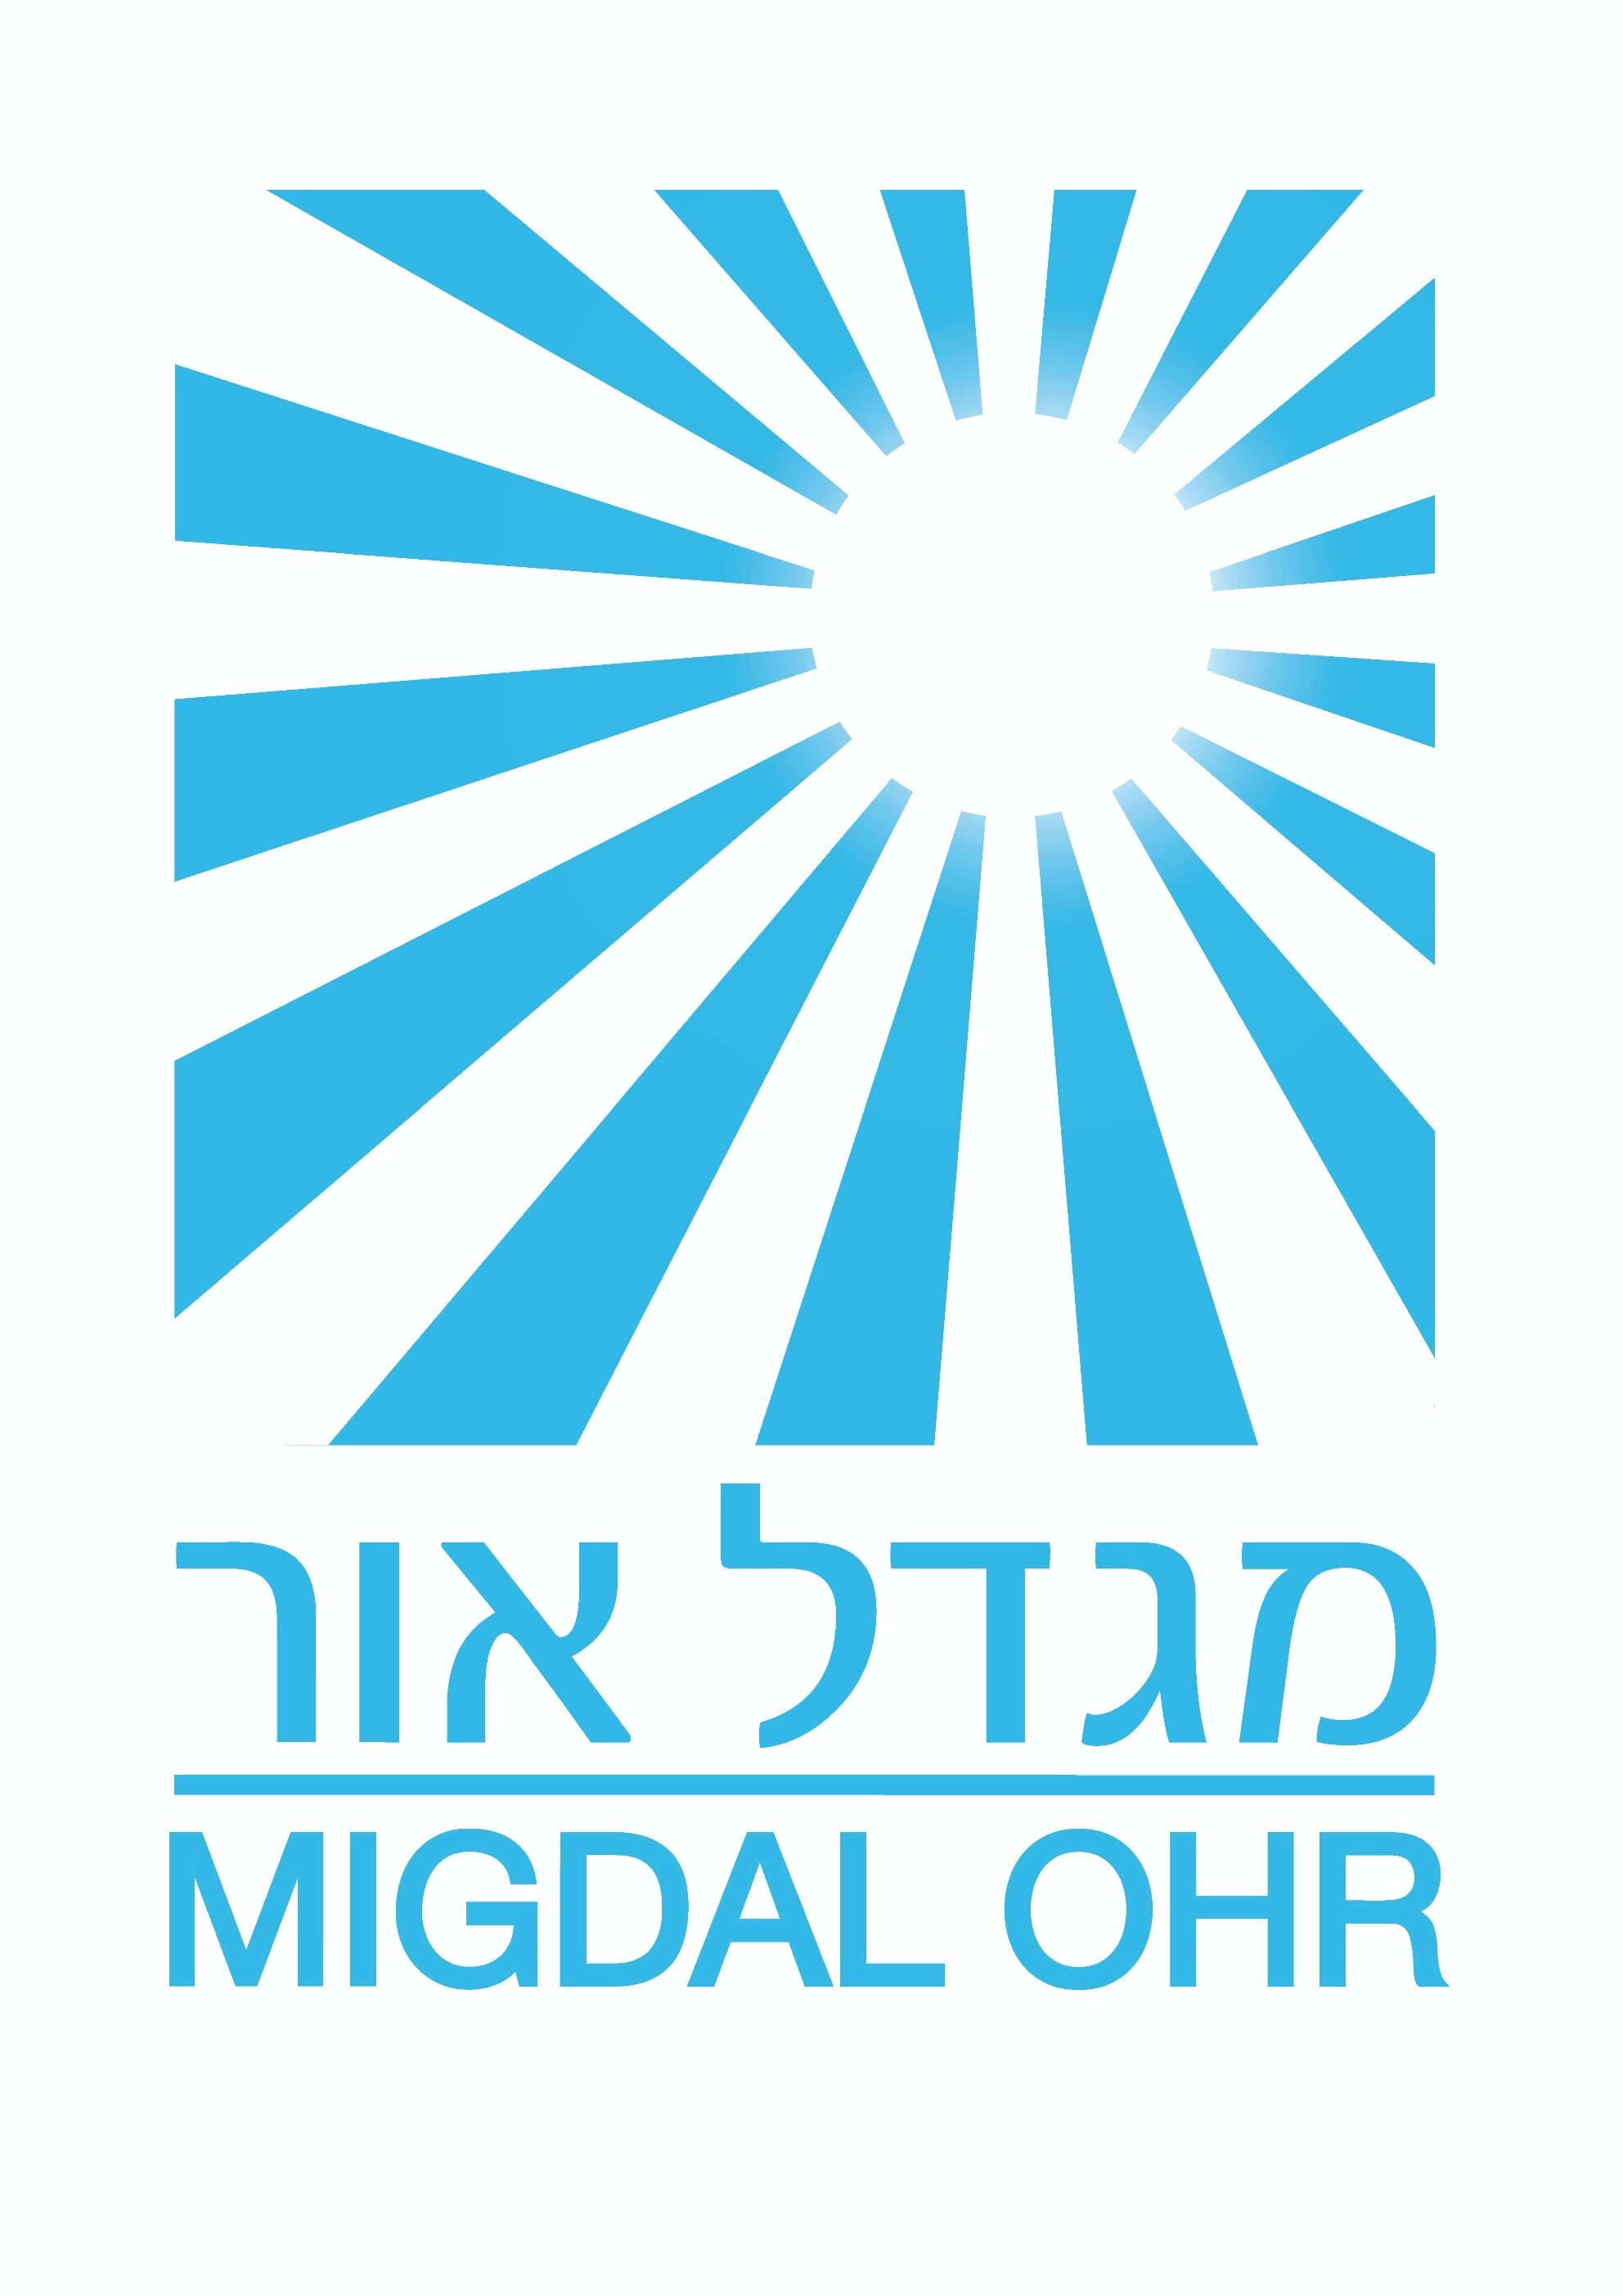 Icon for Migdal Ohr